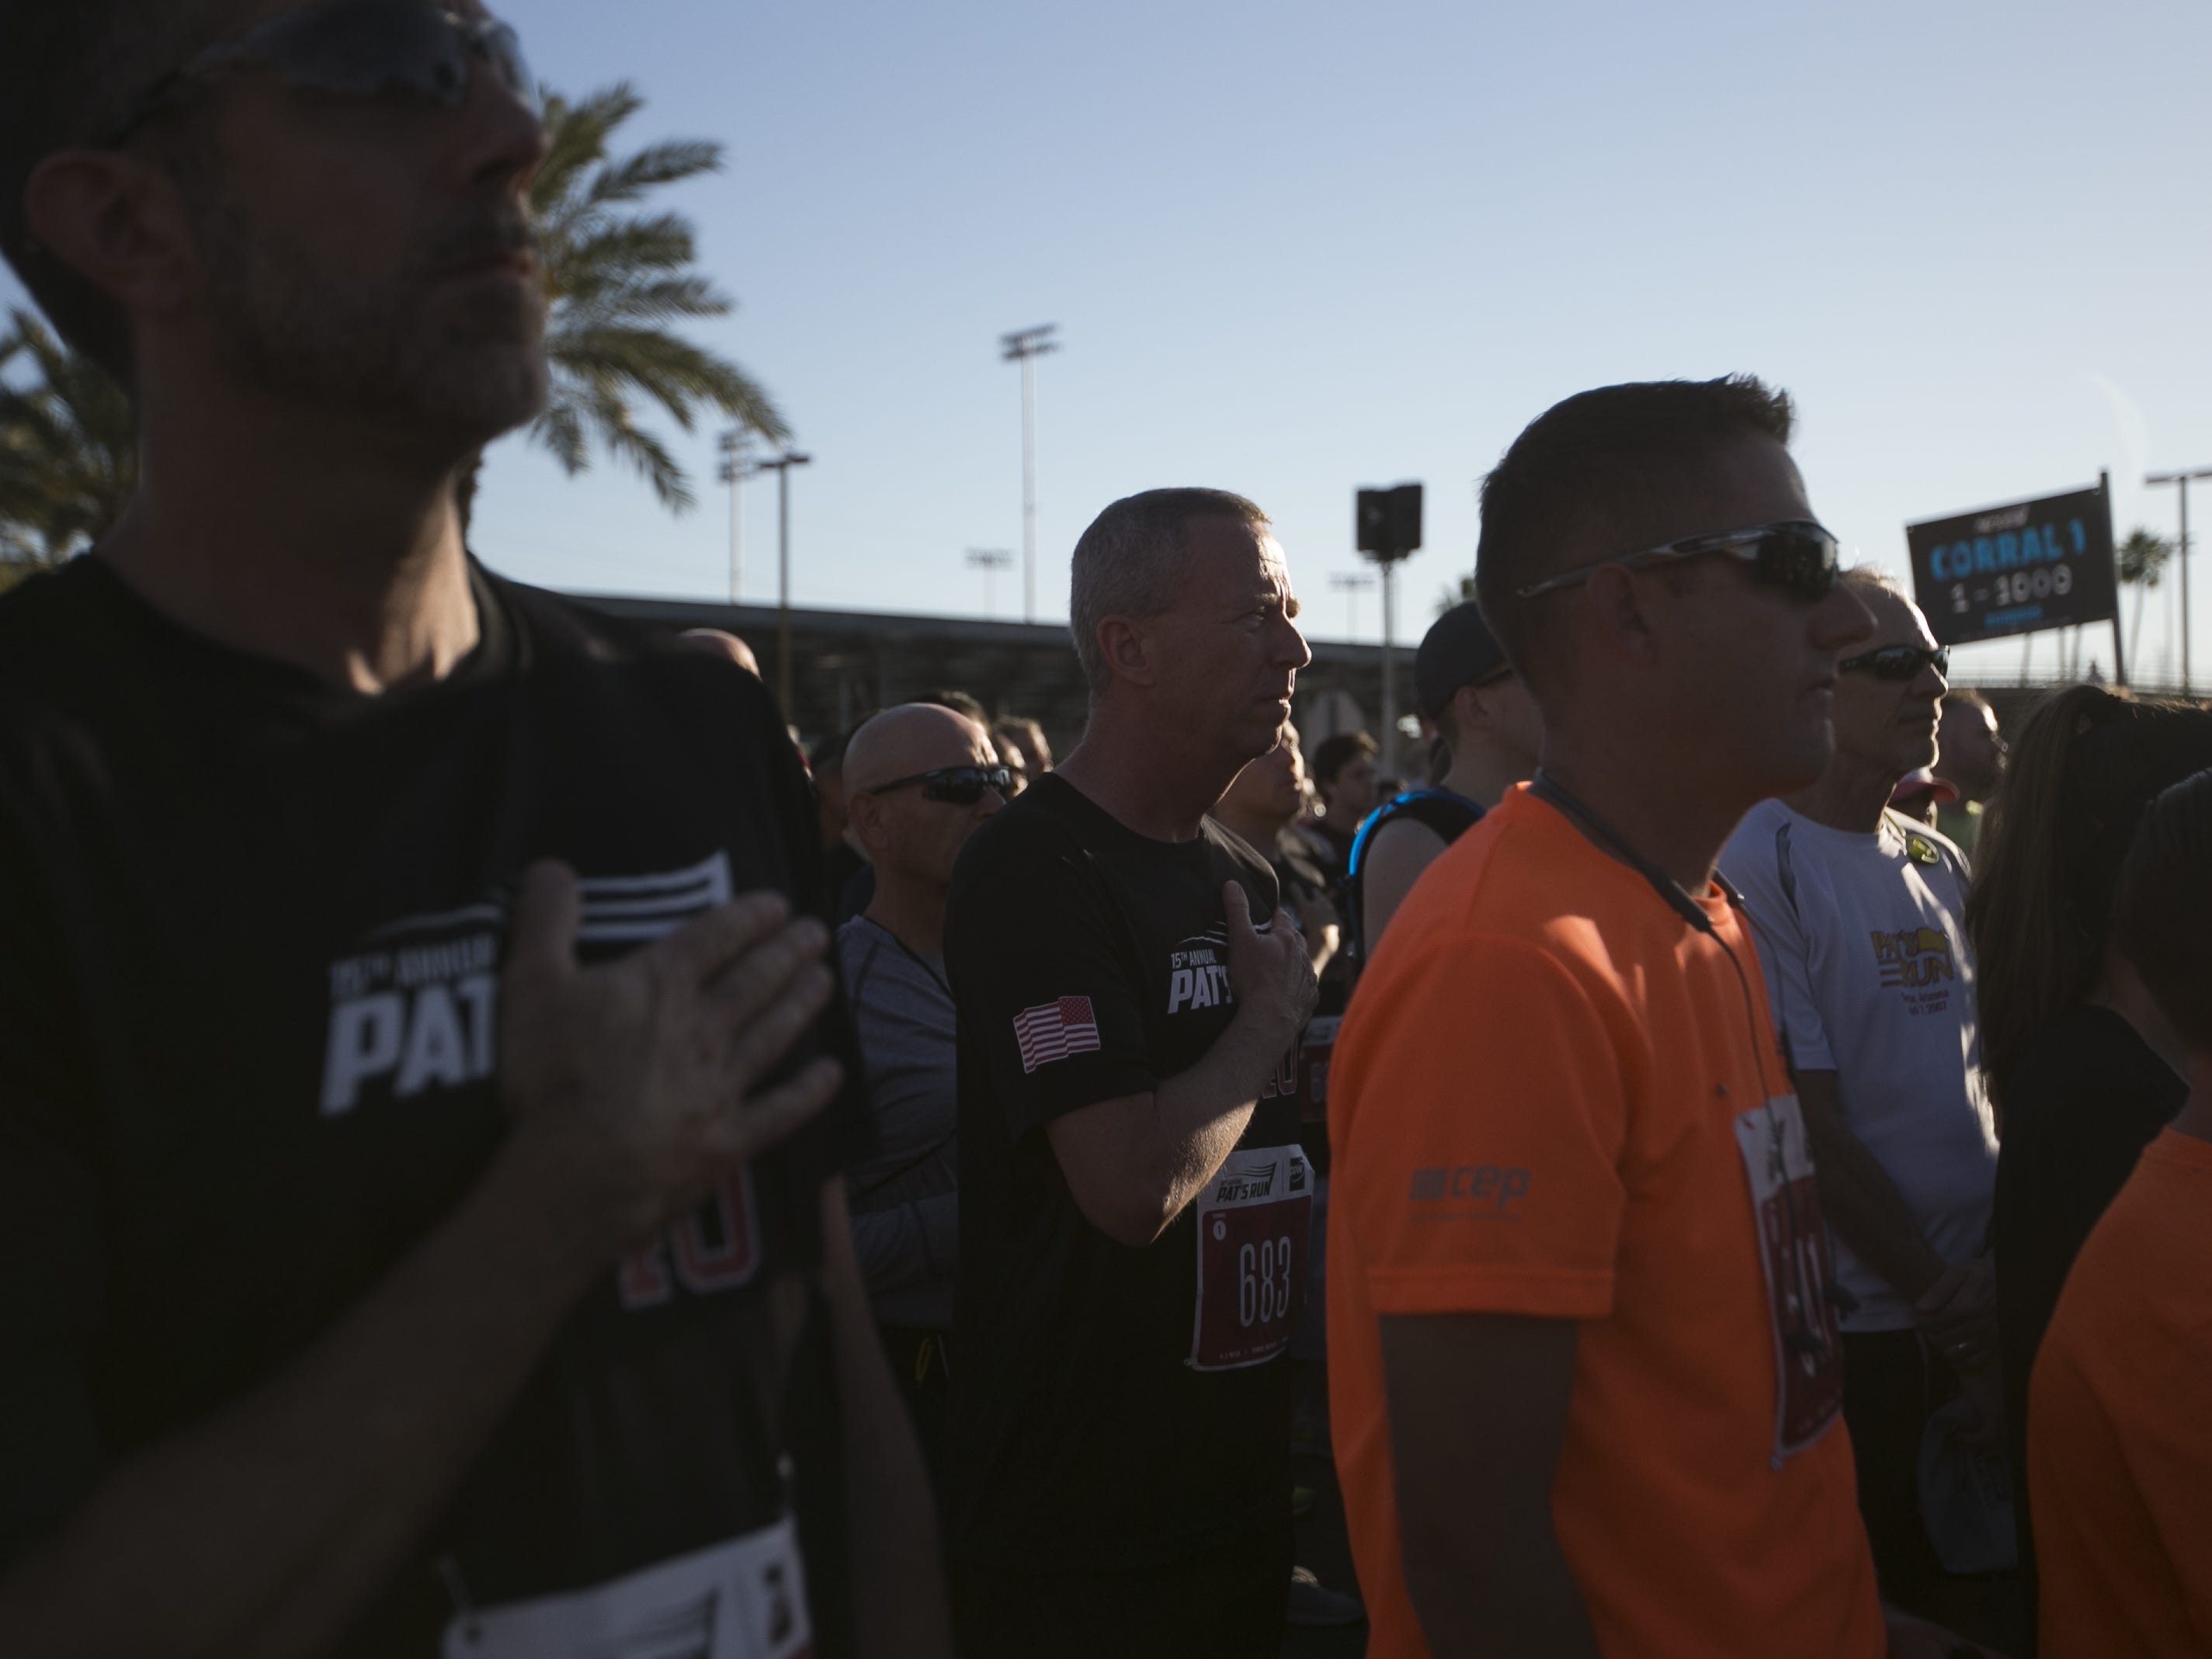 Runners cross their hands over their hearts as the national anthem is performed at Pat's Run 2019 in Tempe on April 27, 2019.